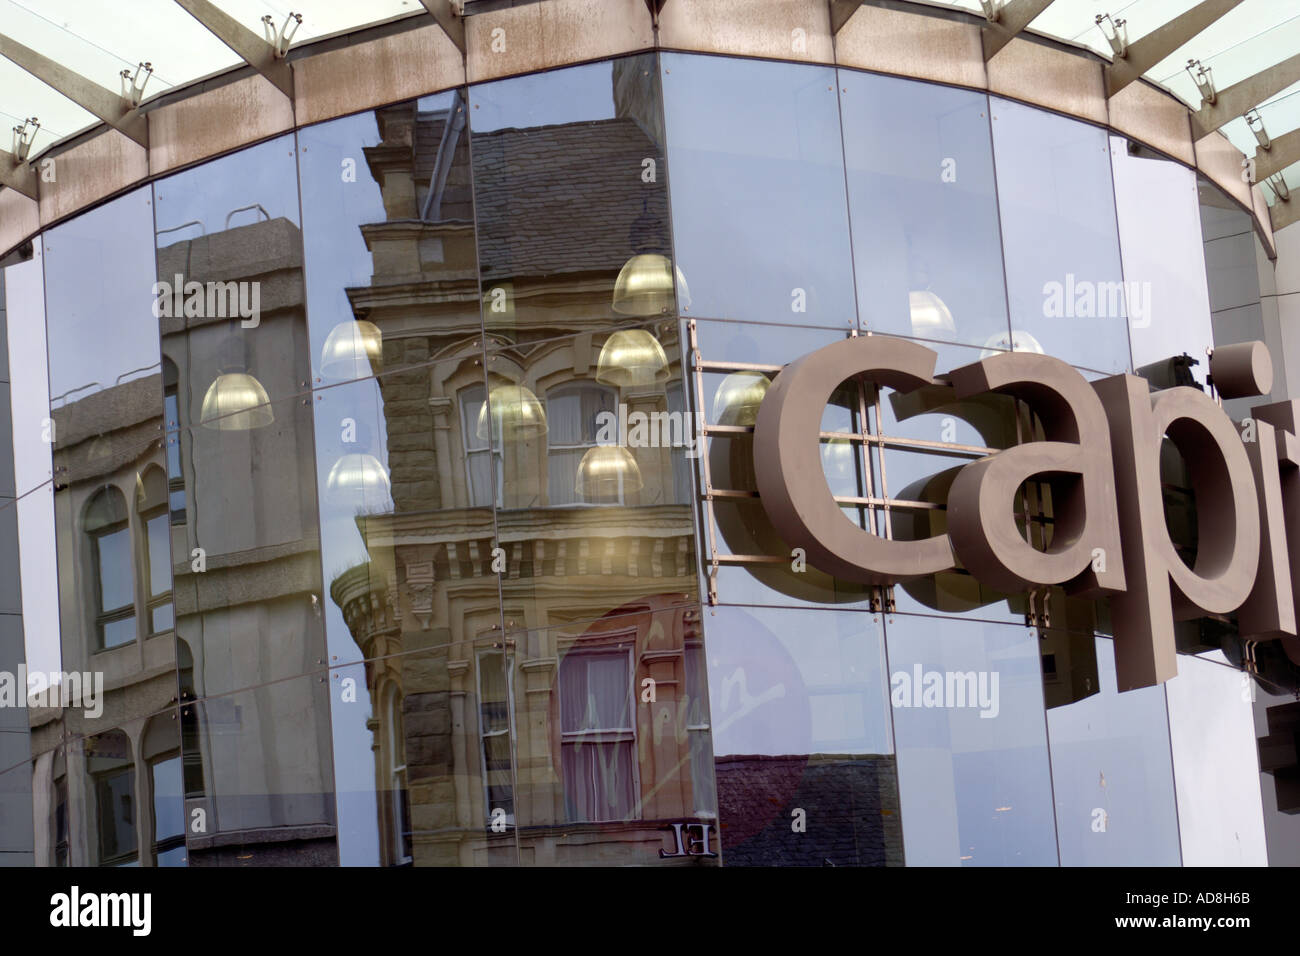 Contemporary Retail Architecture Queen Street Cardiff Wales